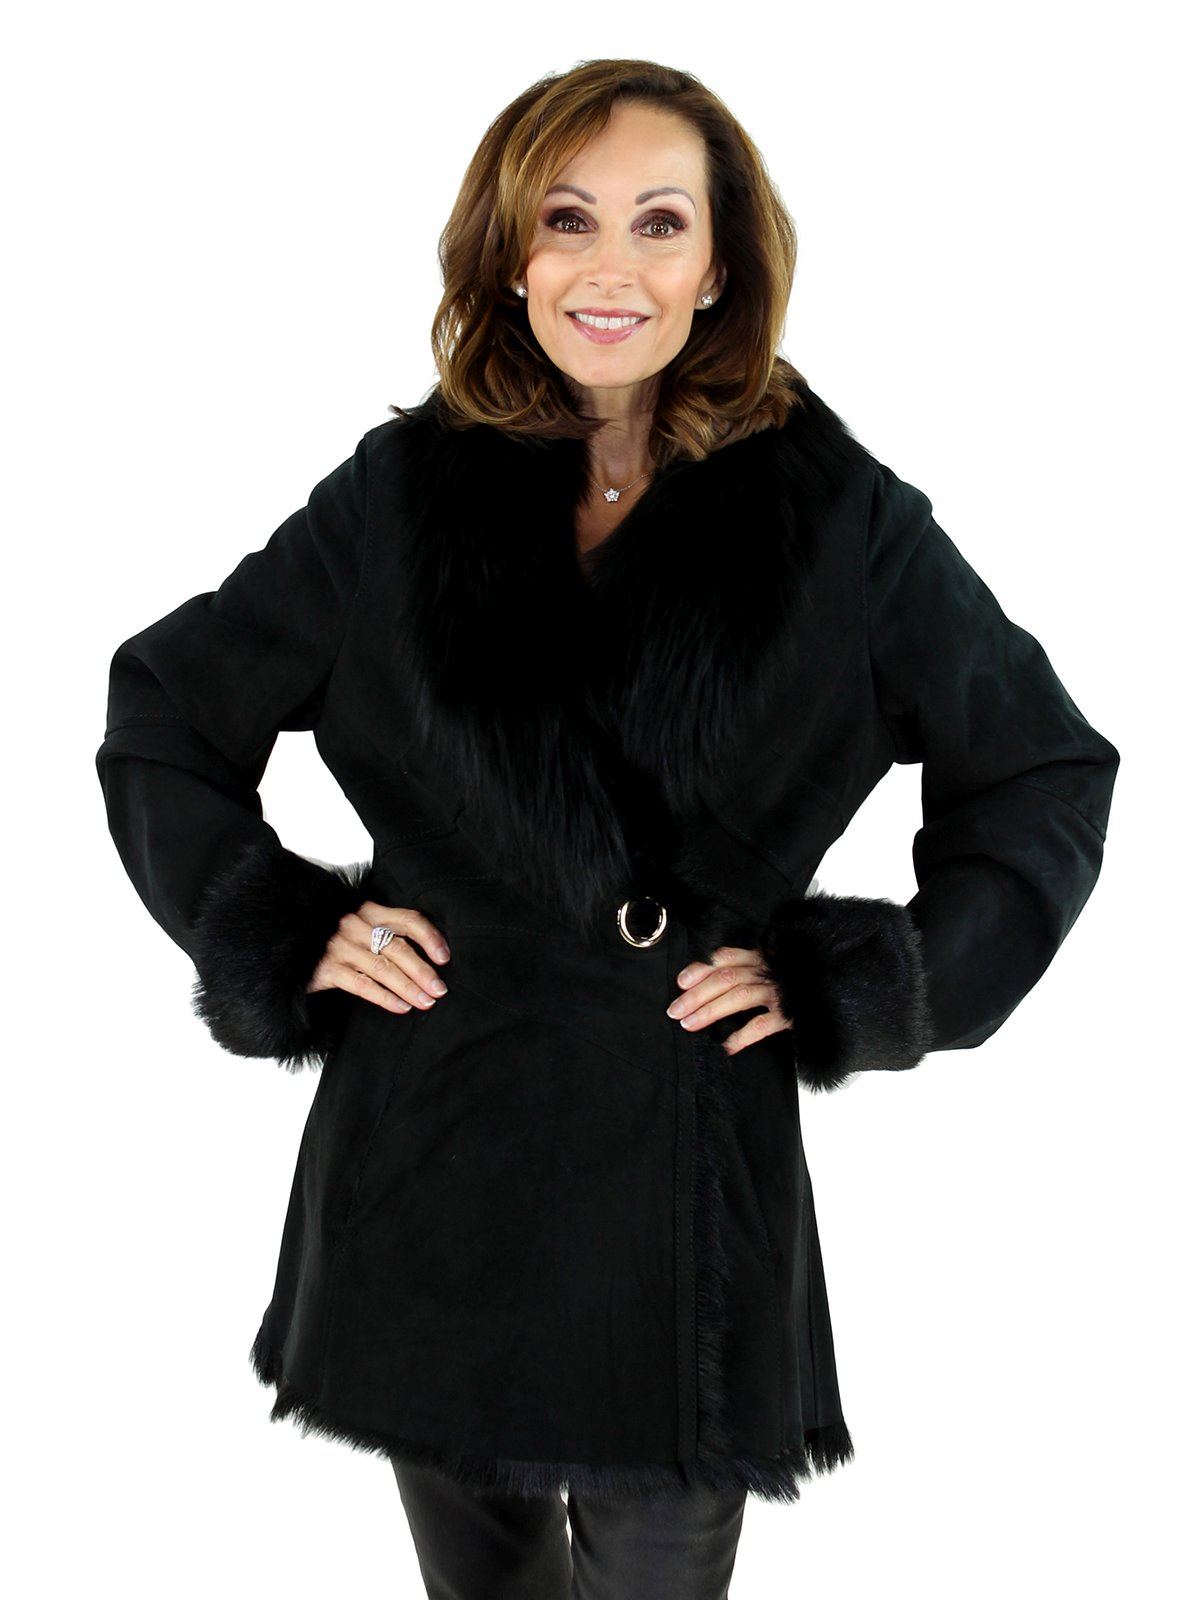 Woman's Black Goat Shearling Jacket with Black Fox Fur Collar